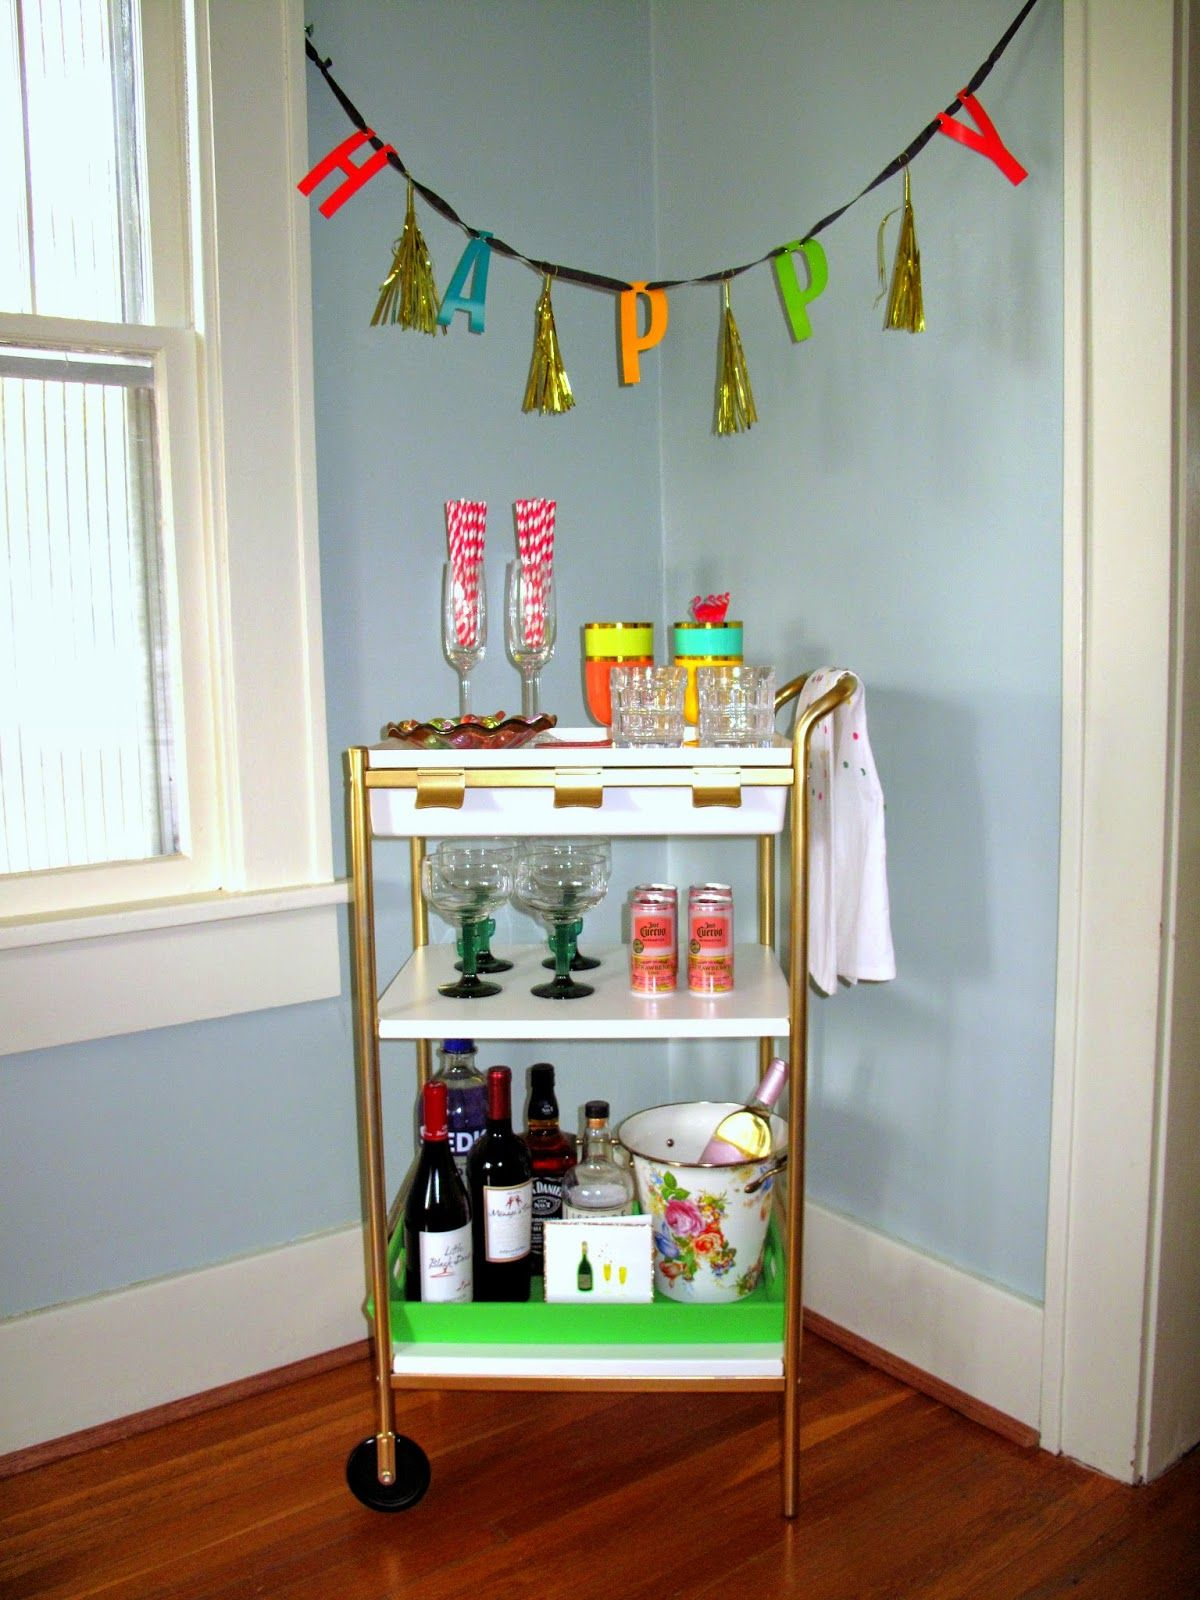 Redo Of The Ikea Utility Cart And A Fun Way To Style It!